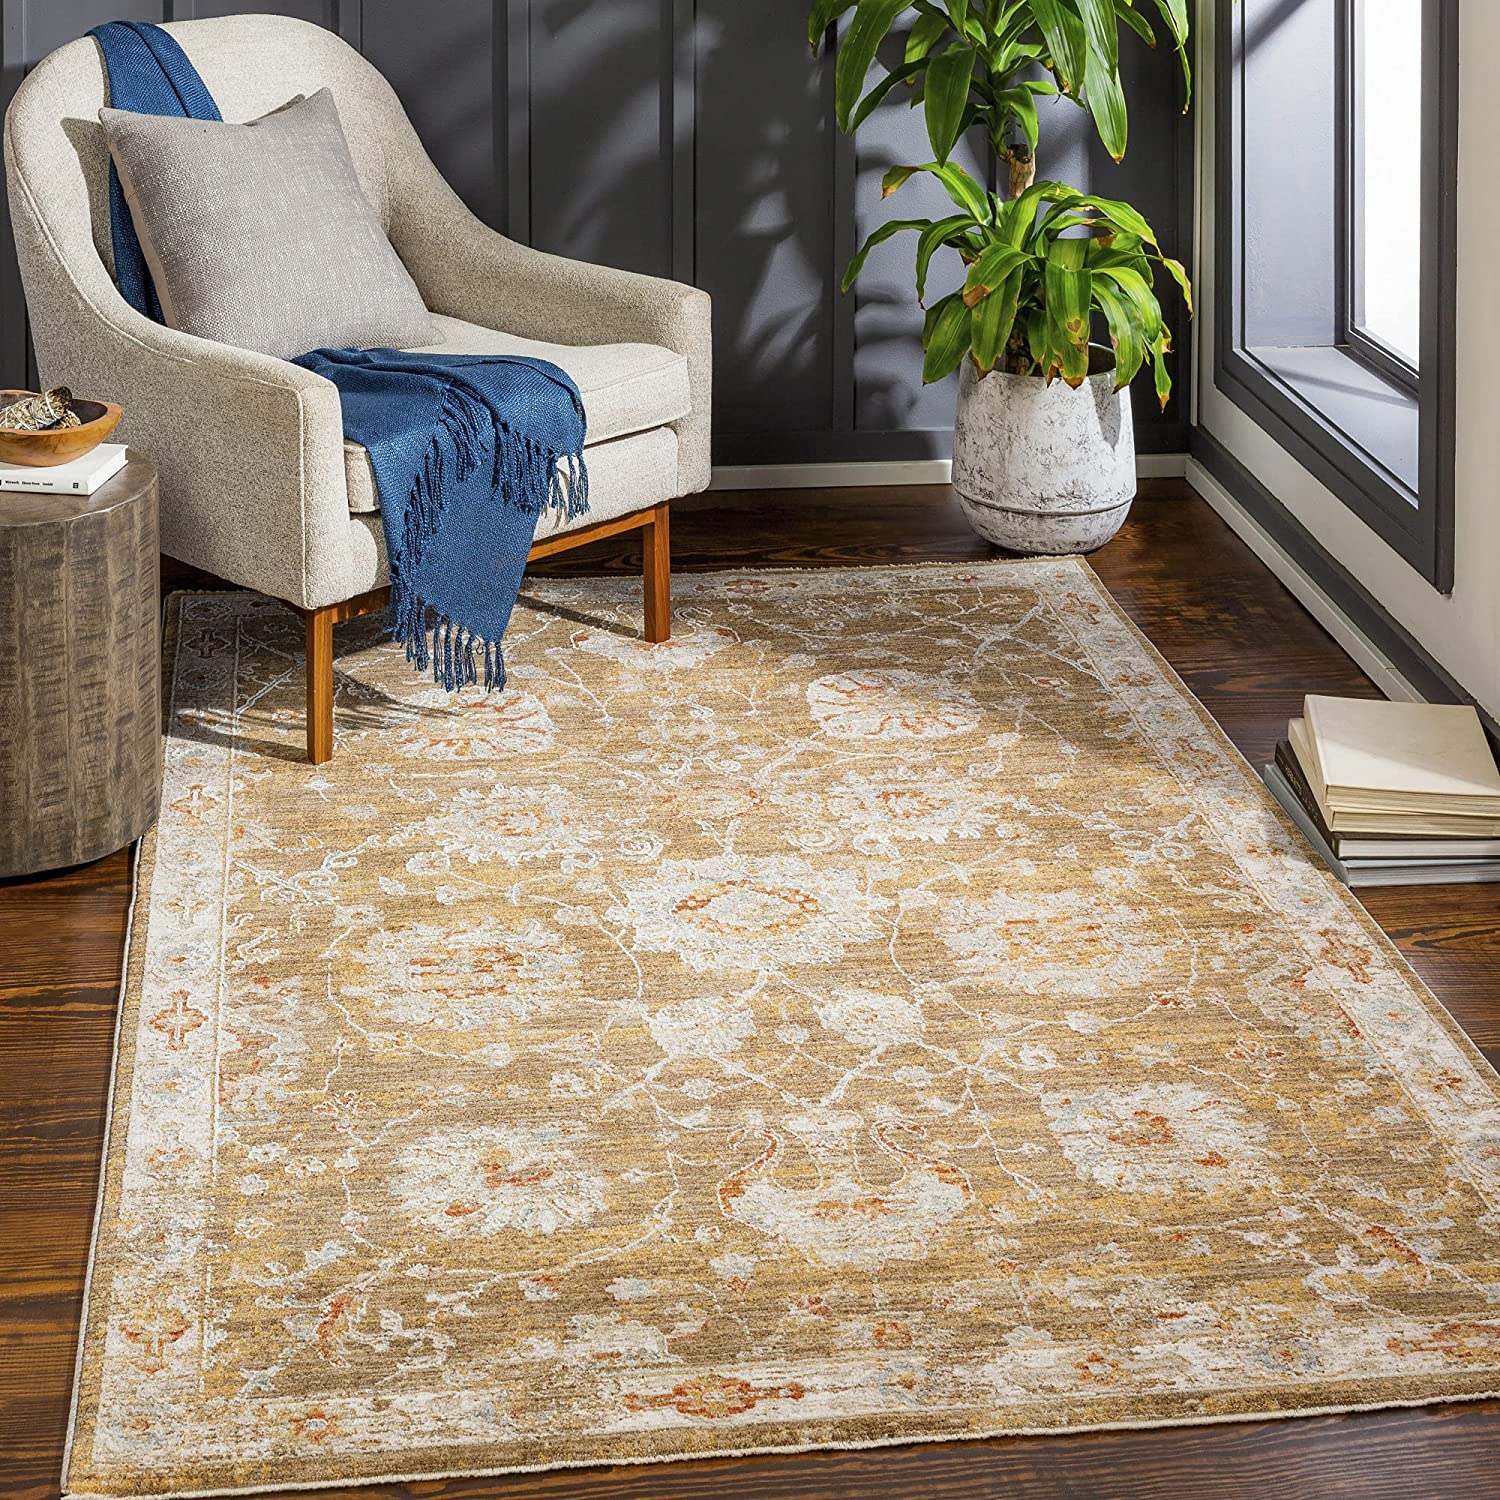 Artistic Weavers Arden Traditional Floral Rug Inventory cleanup Excellent selling sale 7'10